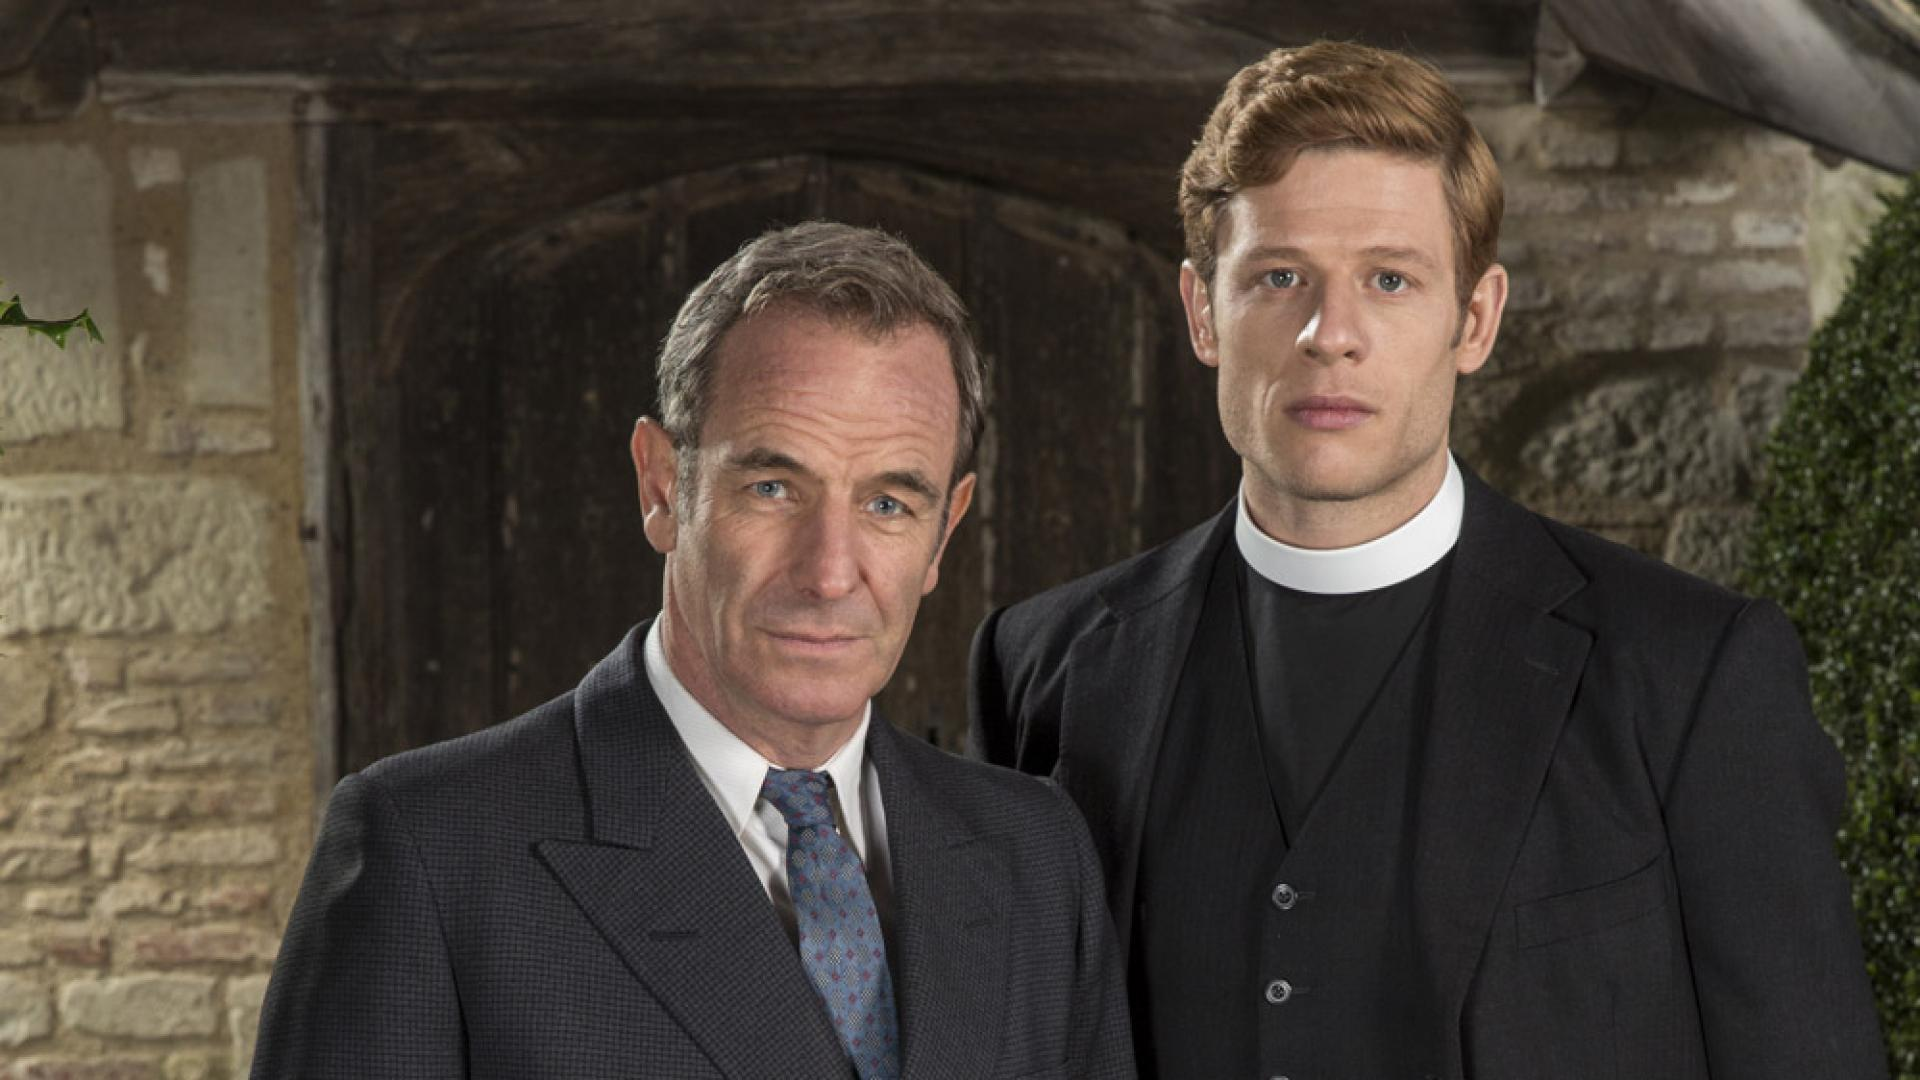 Grantchester' Season 3 Comes to Masterpiece in June | Telly Visions